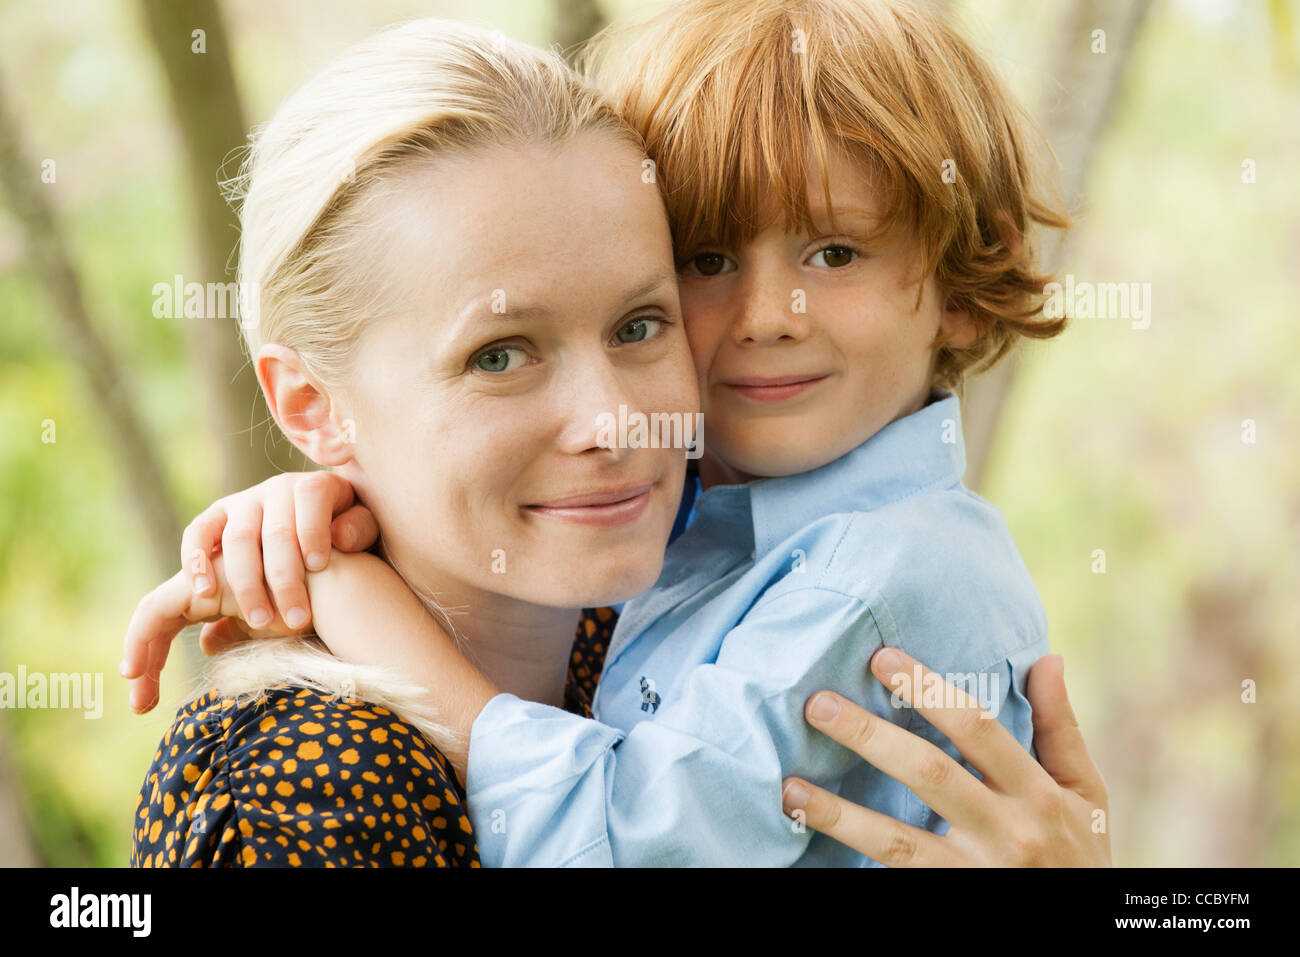 Mother and young son embracing, portrait - Stock Image